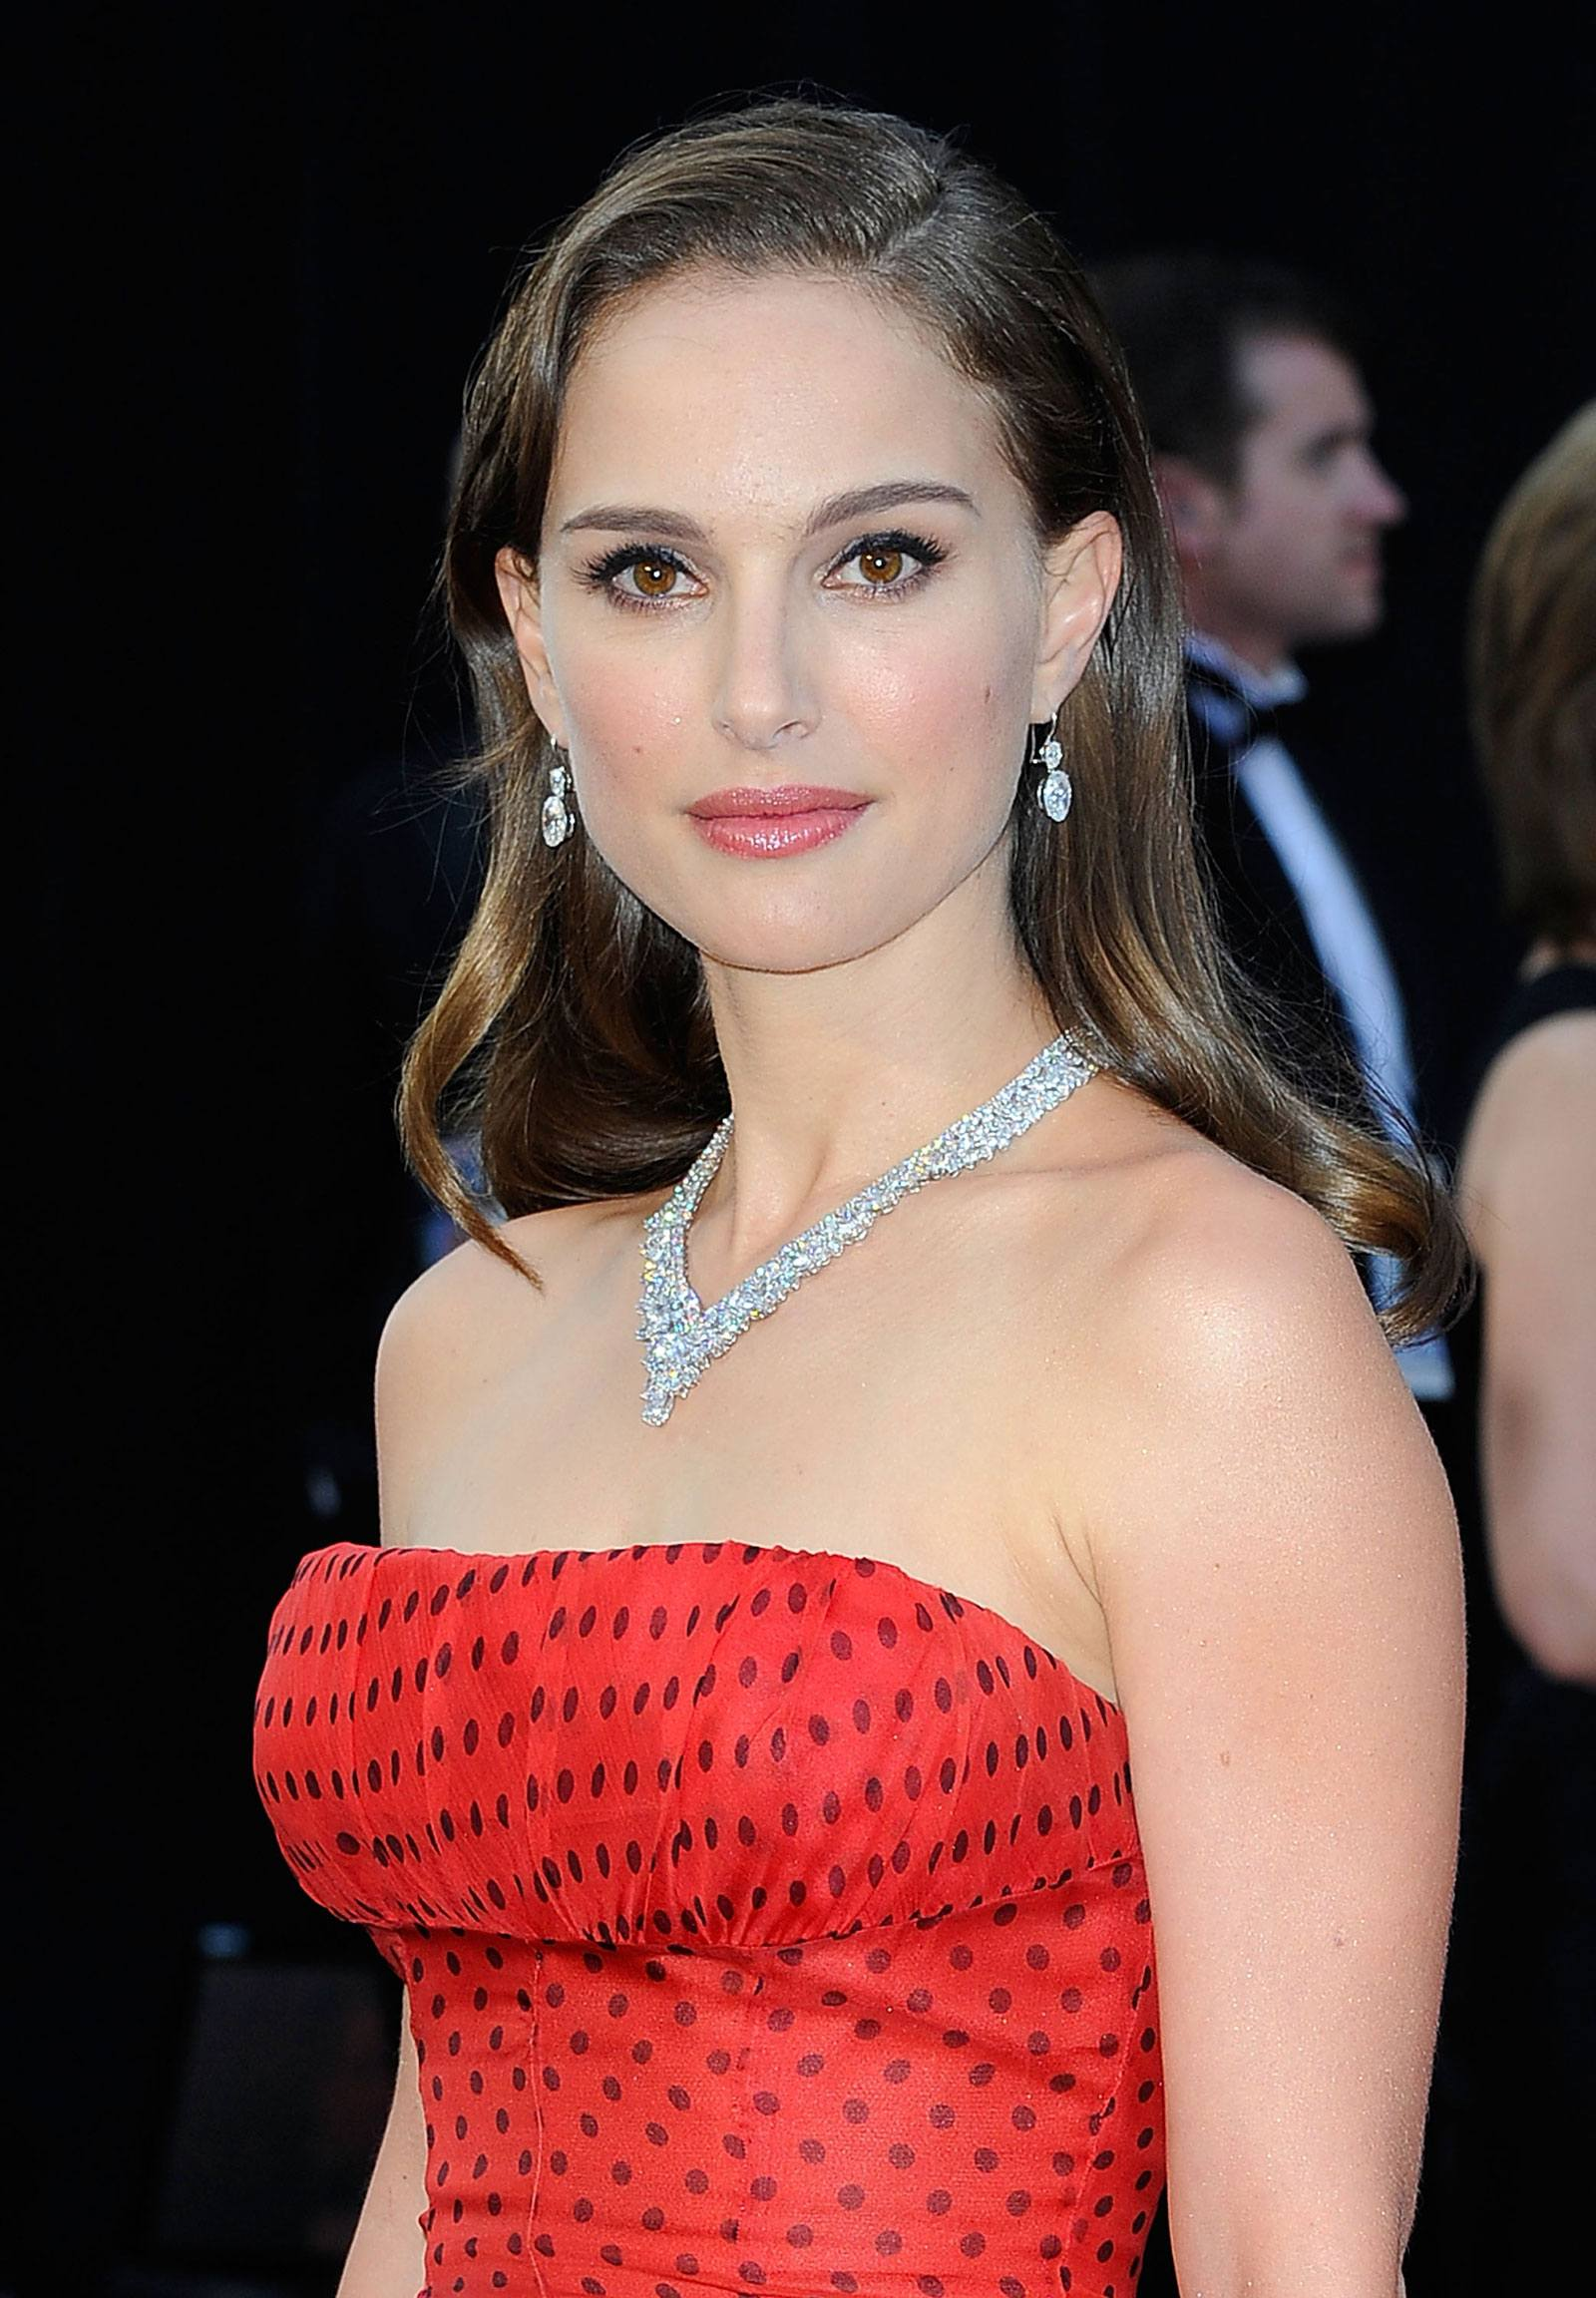 Natalie Portman at 84th Annual Academy Awards in Los Angeles 13 25 Things You Didn't Know About The Dark Knight Rises